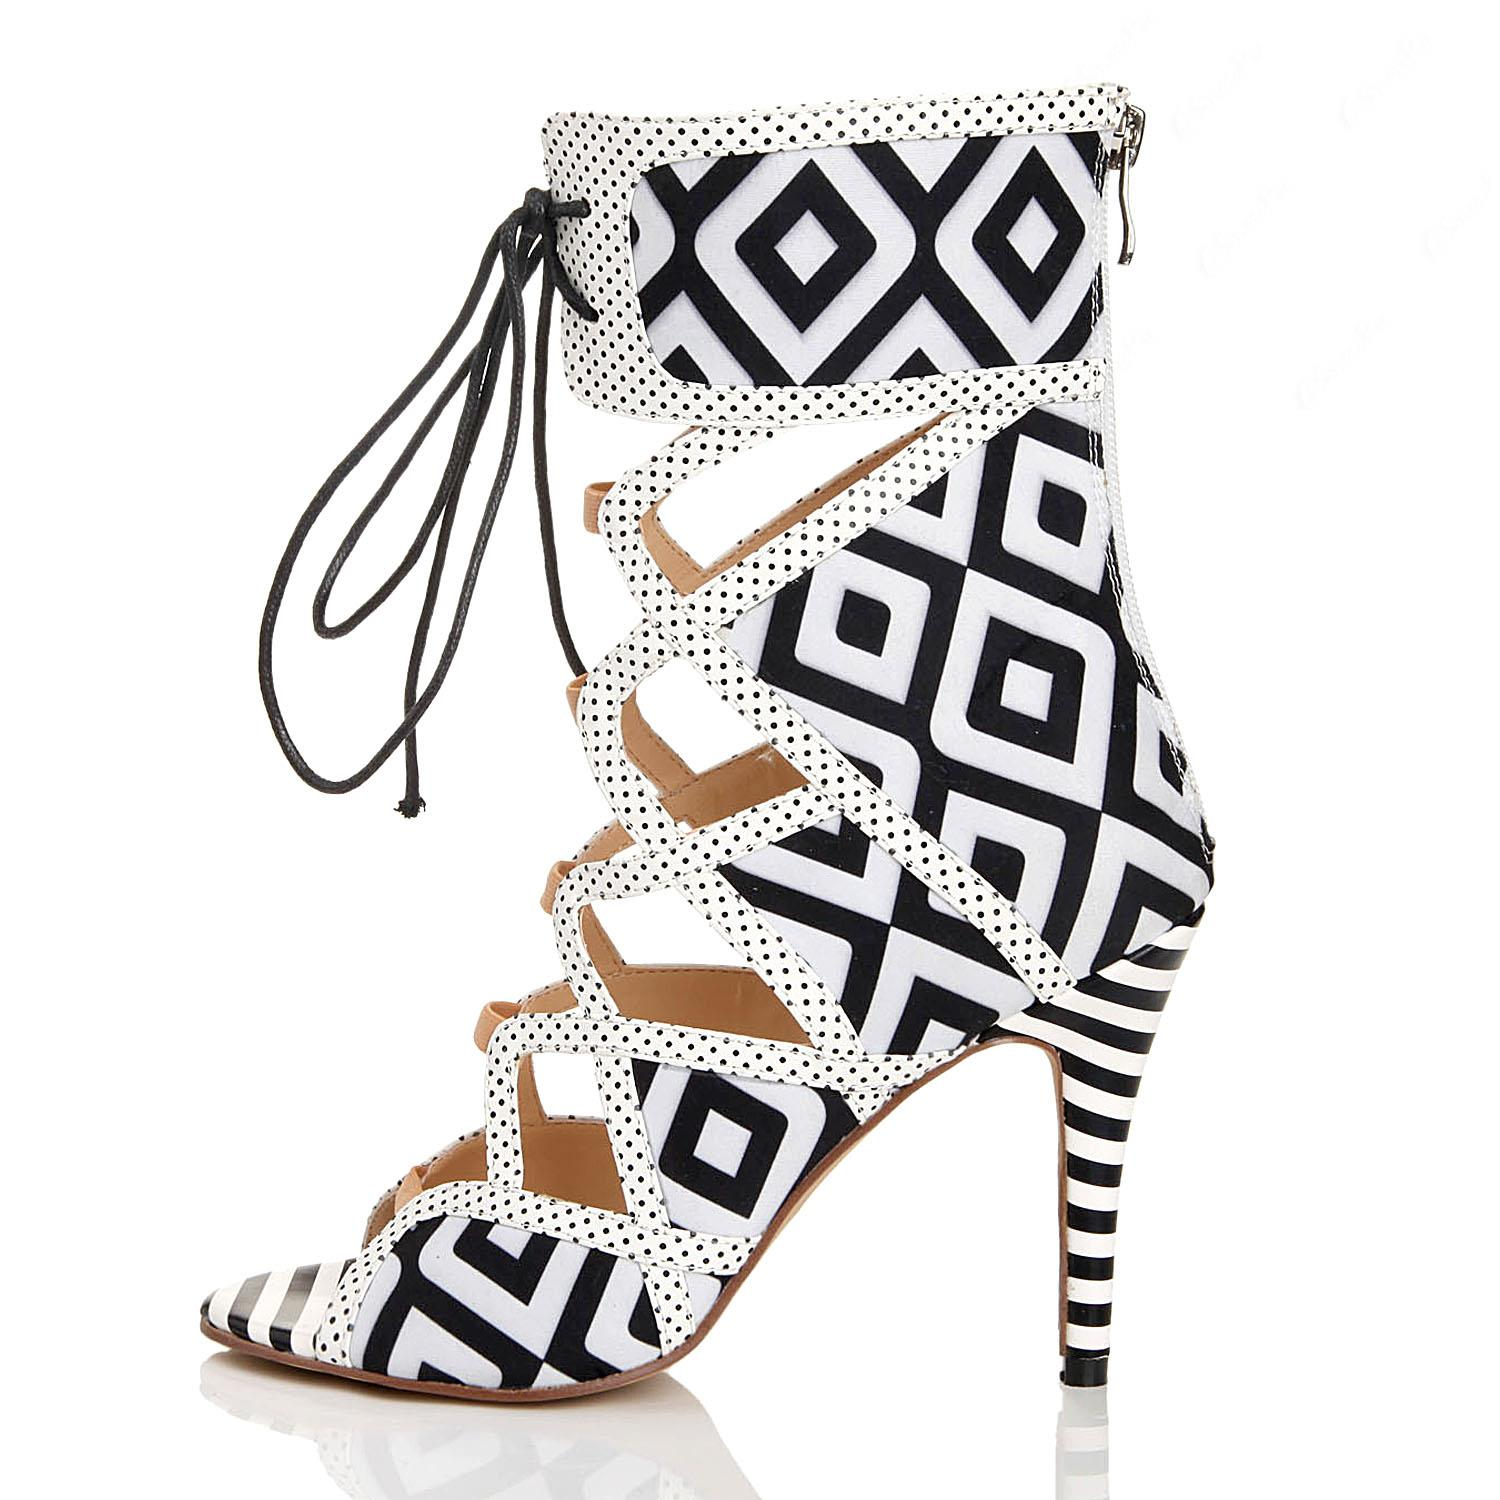 Fashionable Black & White Coppy Leather Cut-Outs High Heel Sandals